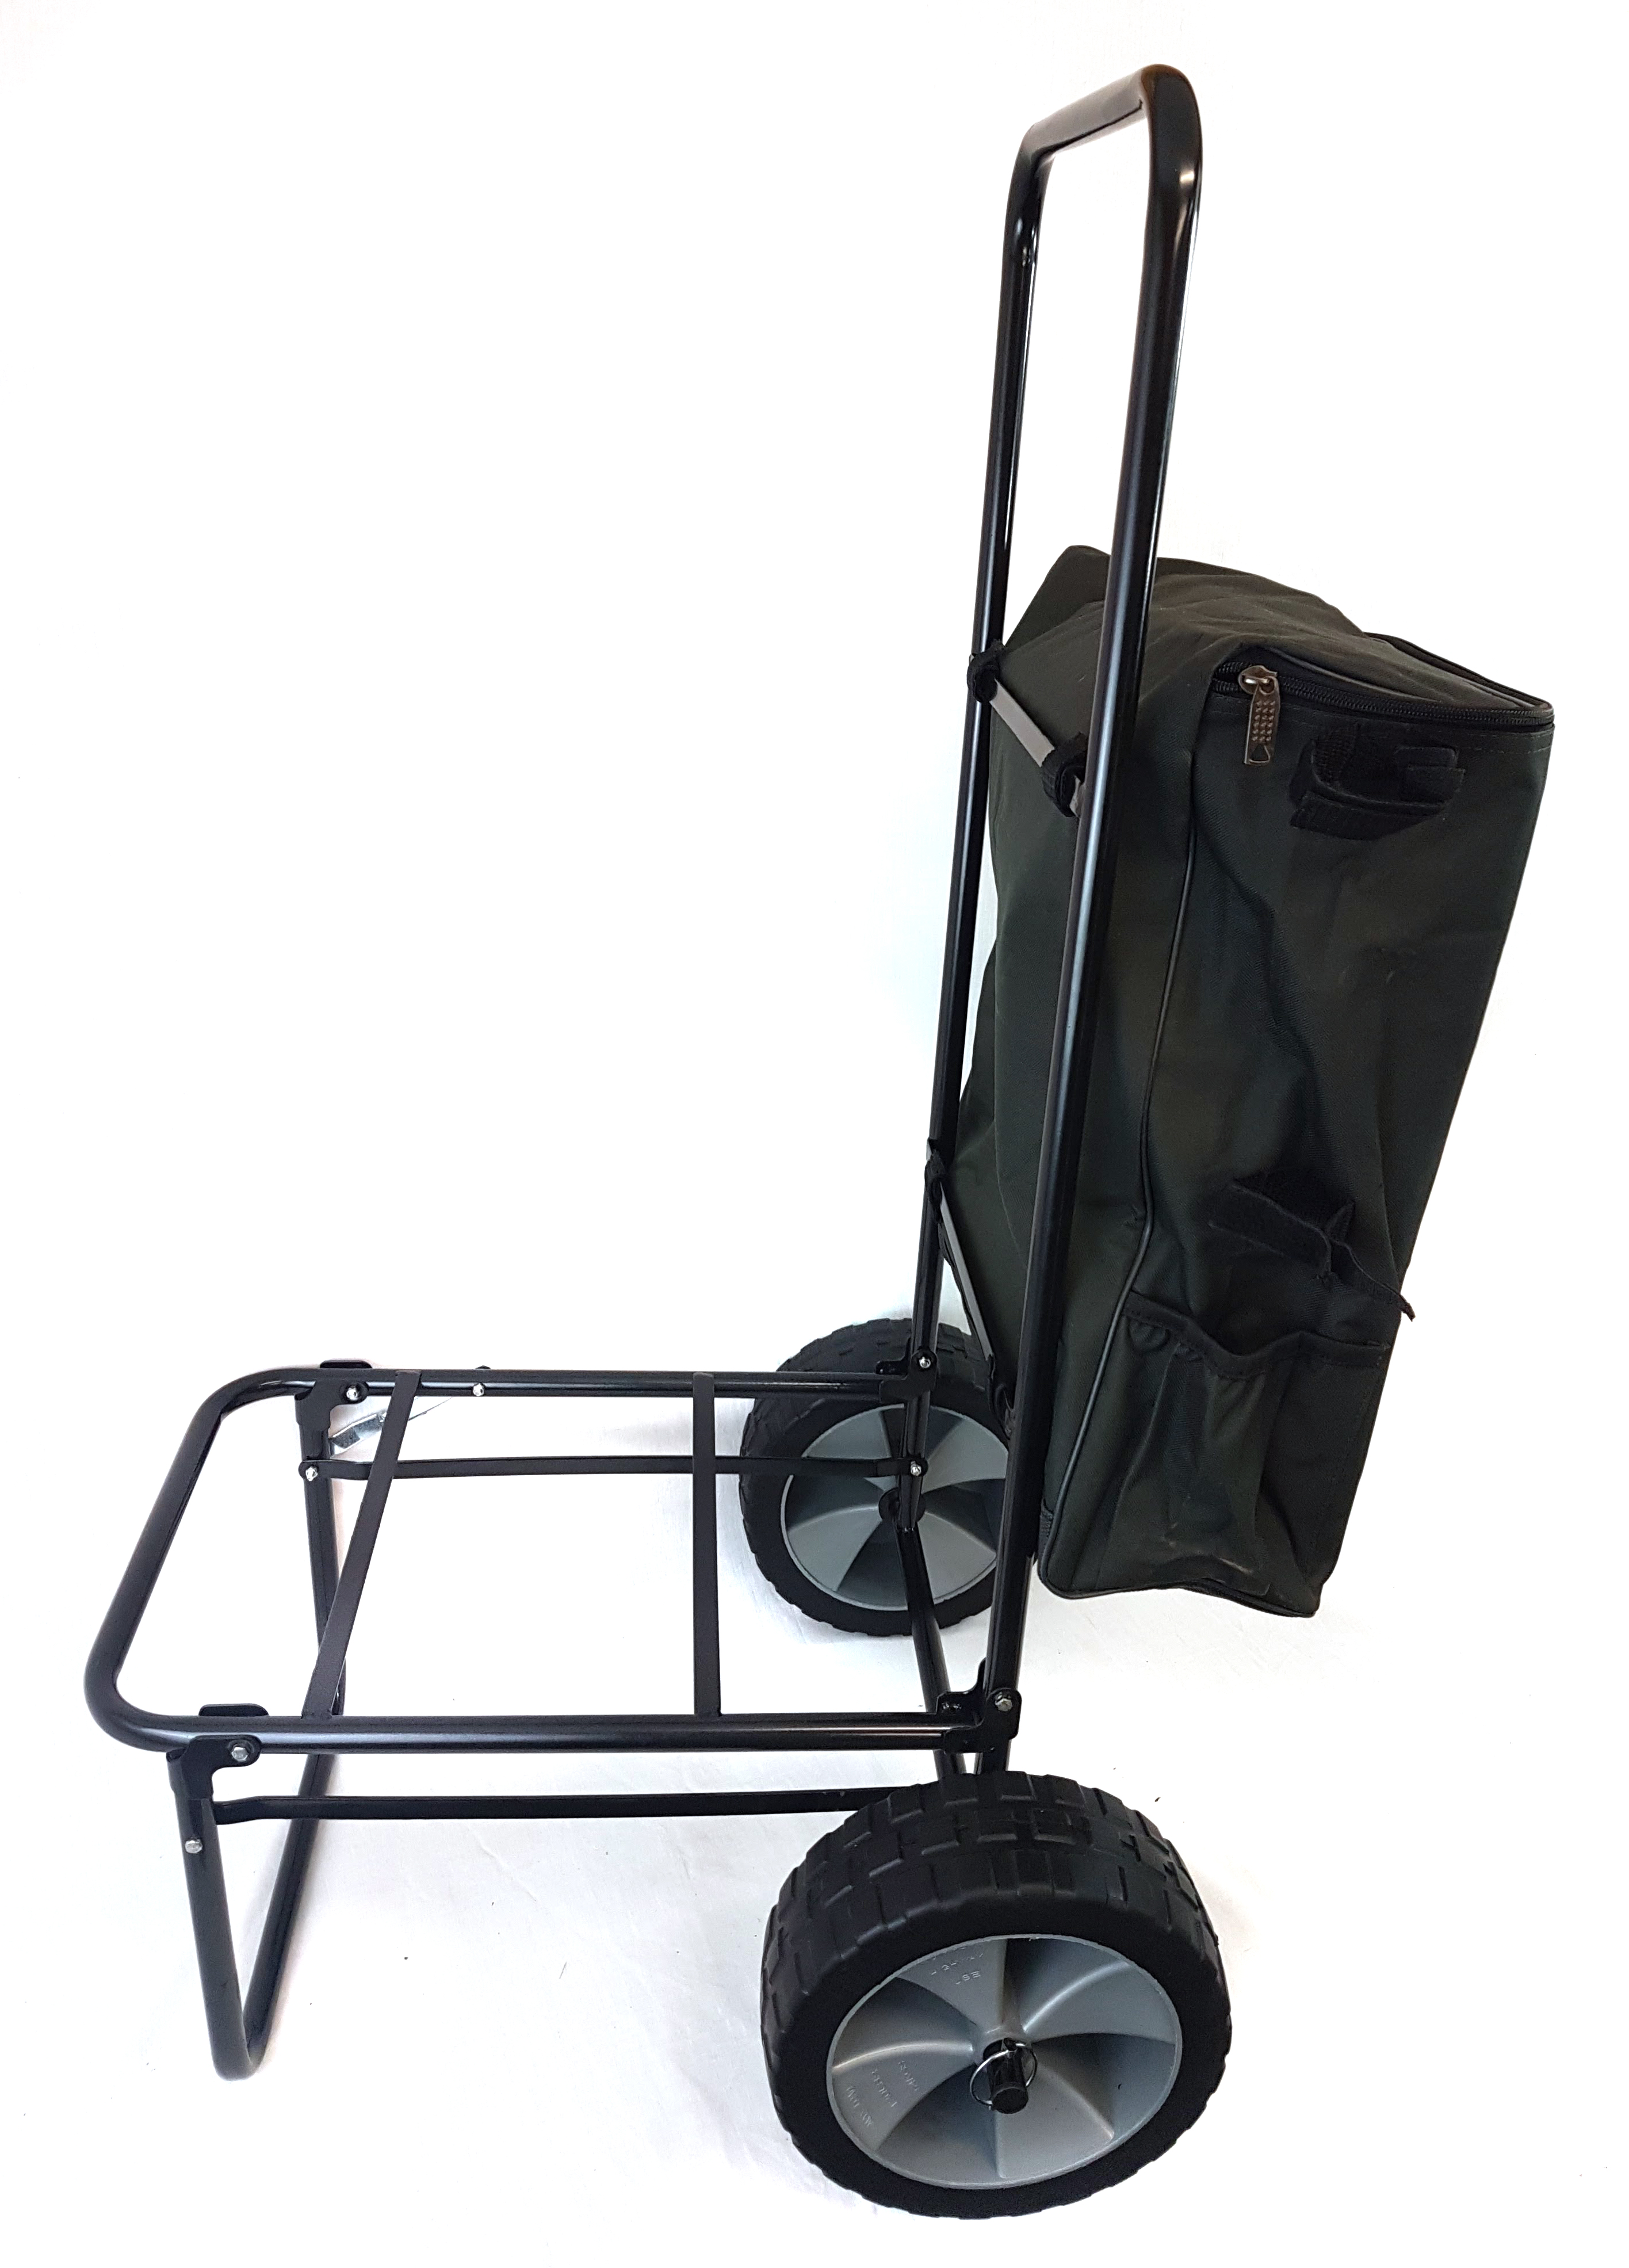 Details about FOLDING FISHING SEATBOX TROLLEY COMPLETE WITH TROLLEY BAG